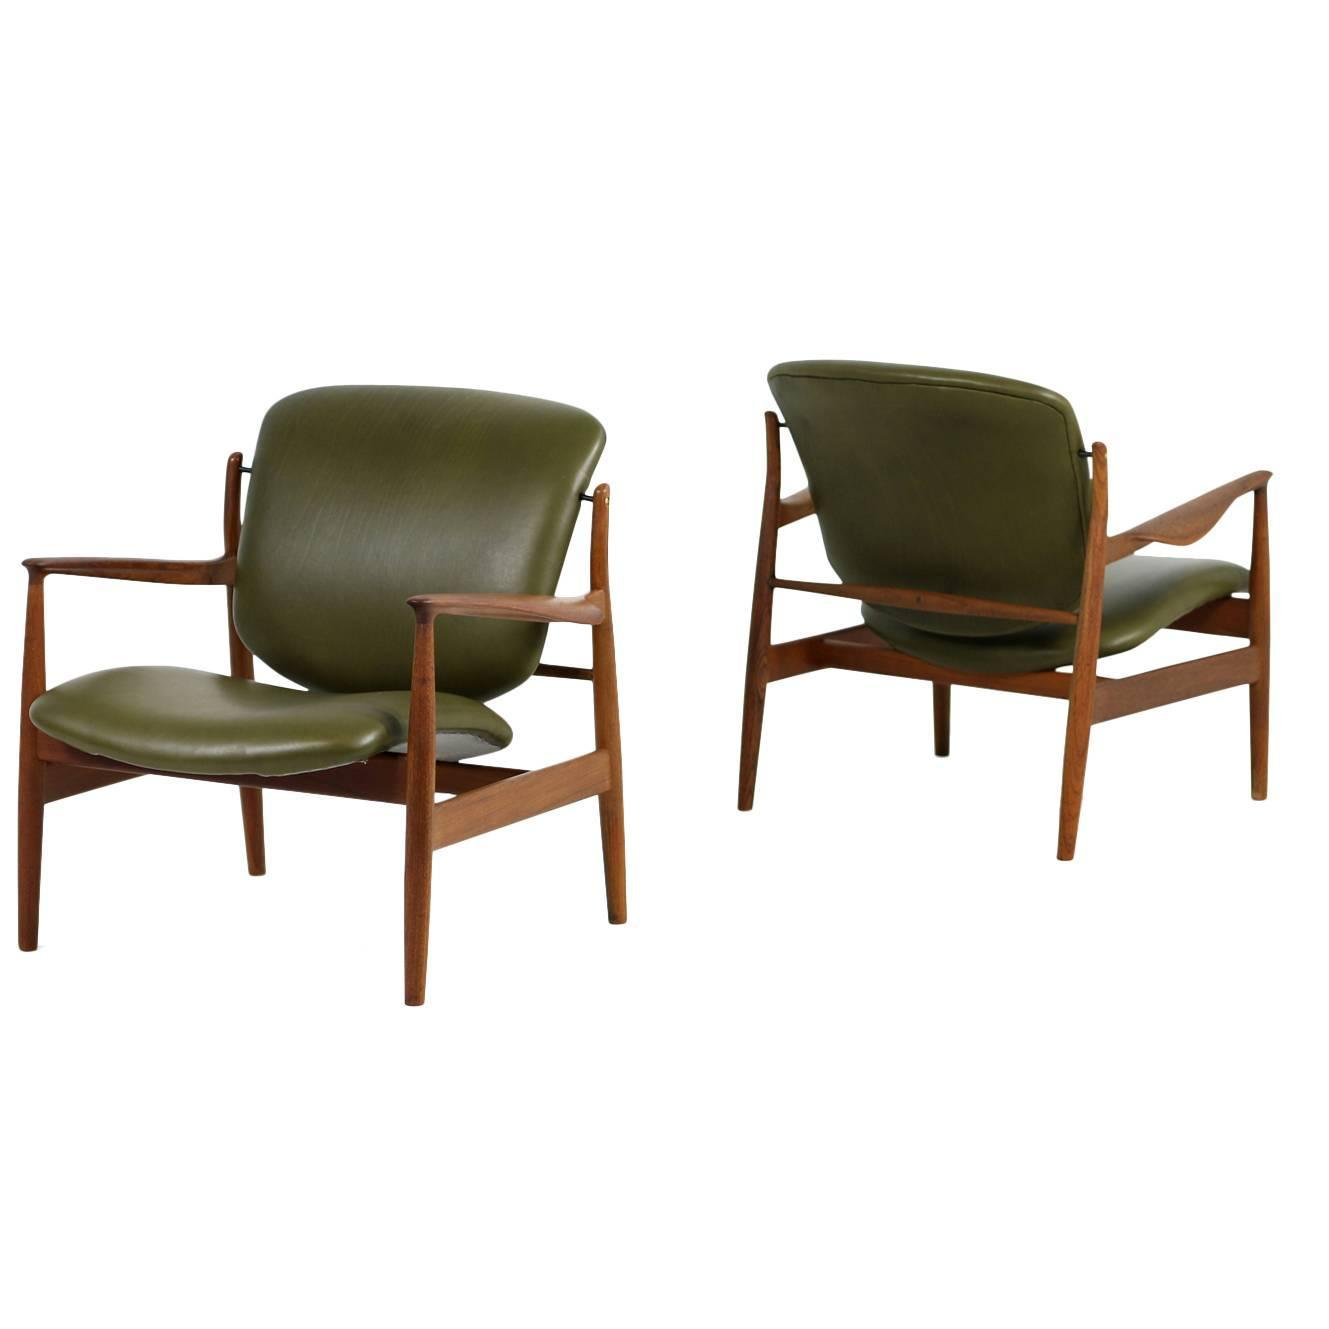 Superb Amazing Pair Of 1950s Finn Juhl Lounge Easy Chairs Mod. FD 136 Teak And  Leather For Sale At 1stdibs